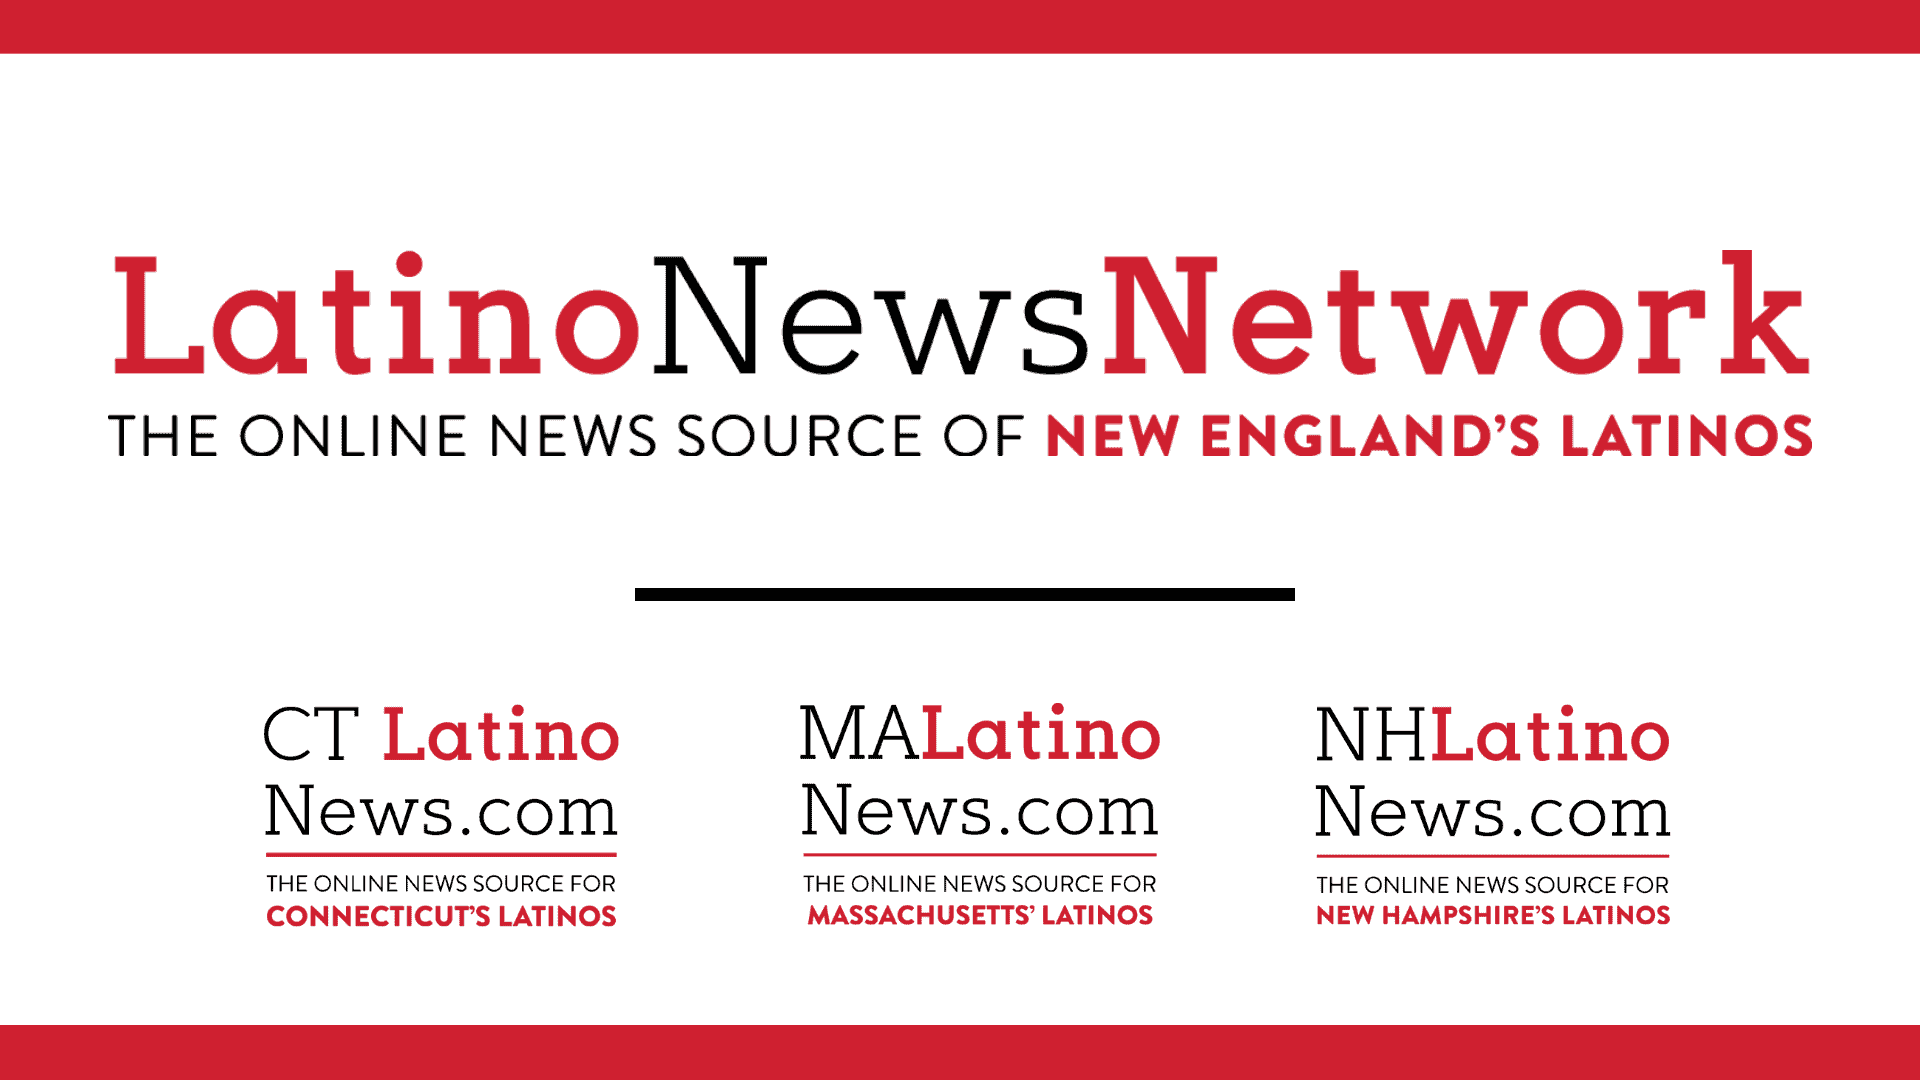 Latino News Network Expands Digital News Outlet to Underserved Communities in New England Area